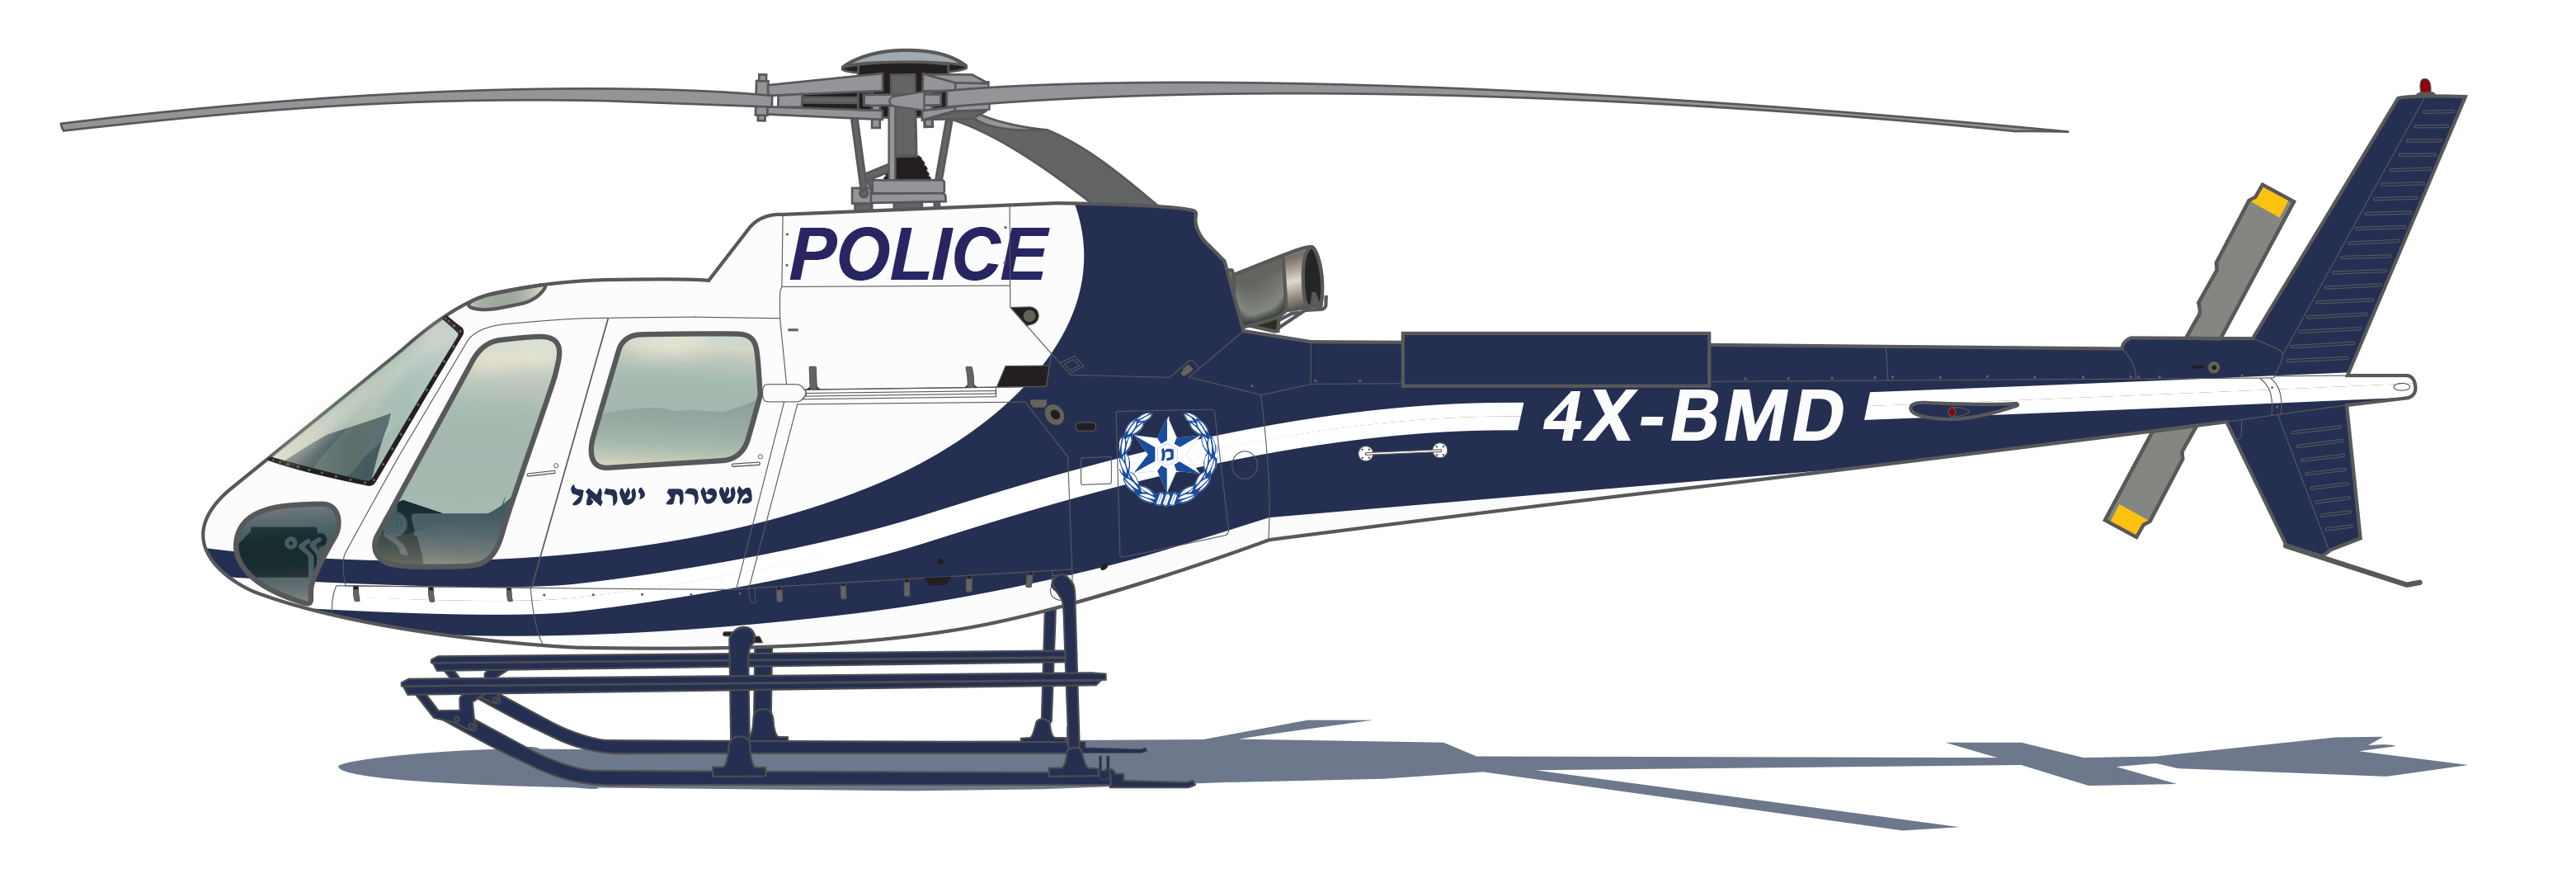 Police helicopter png. Clipart download free images